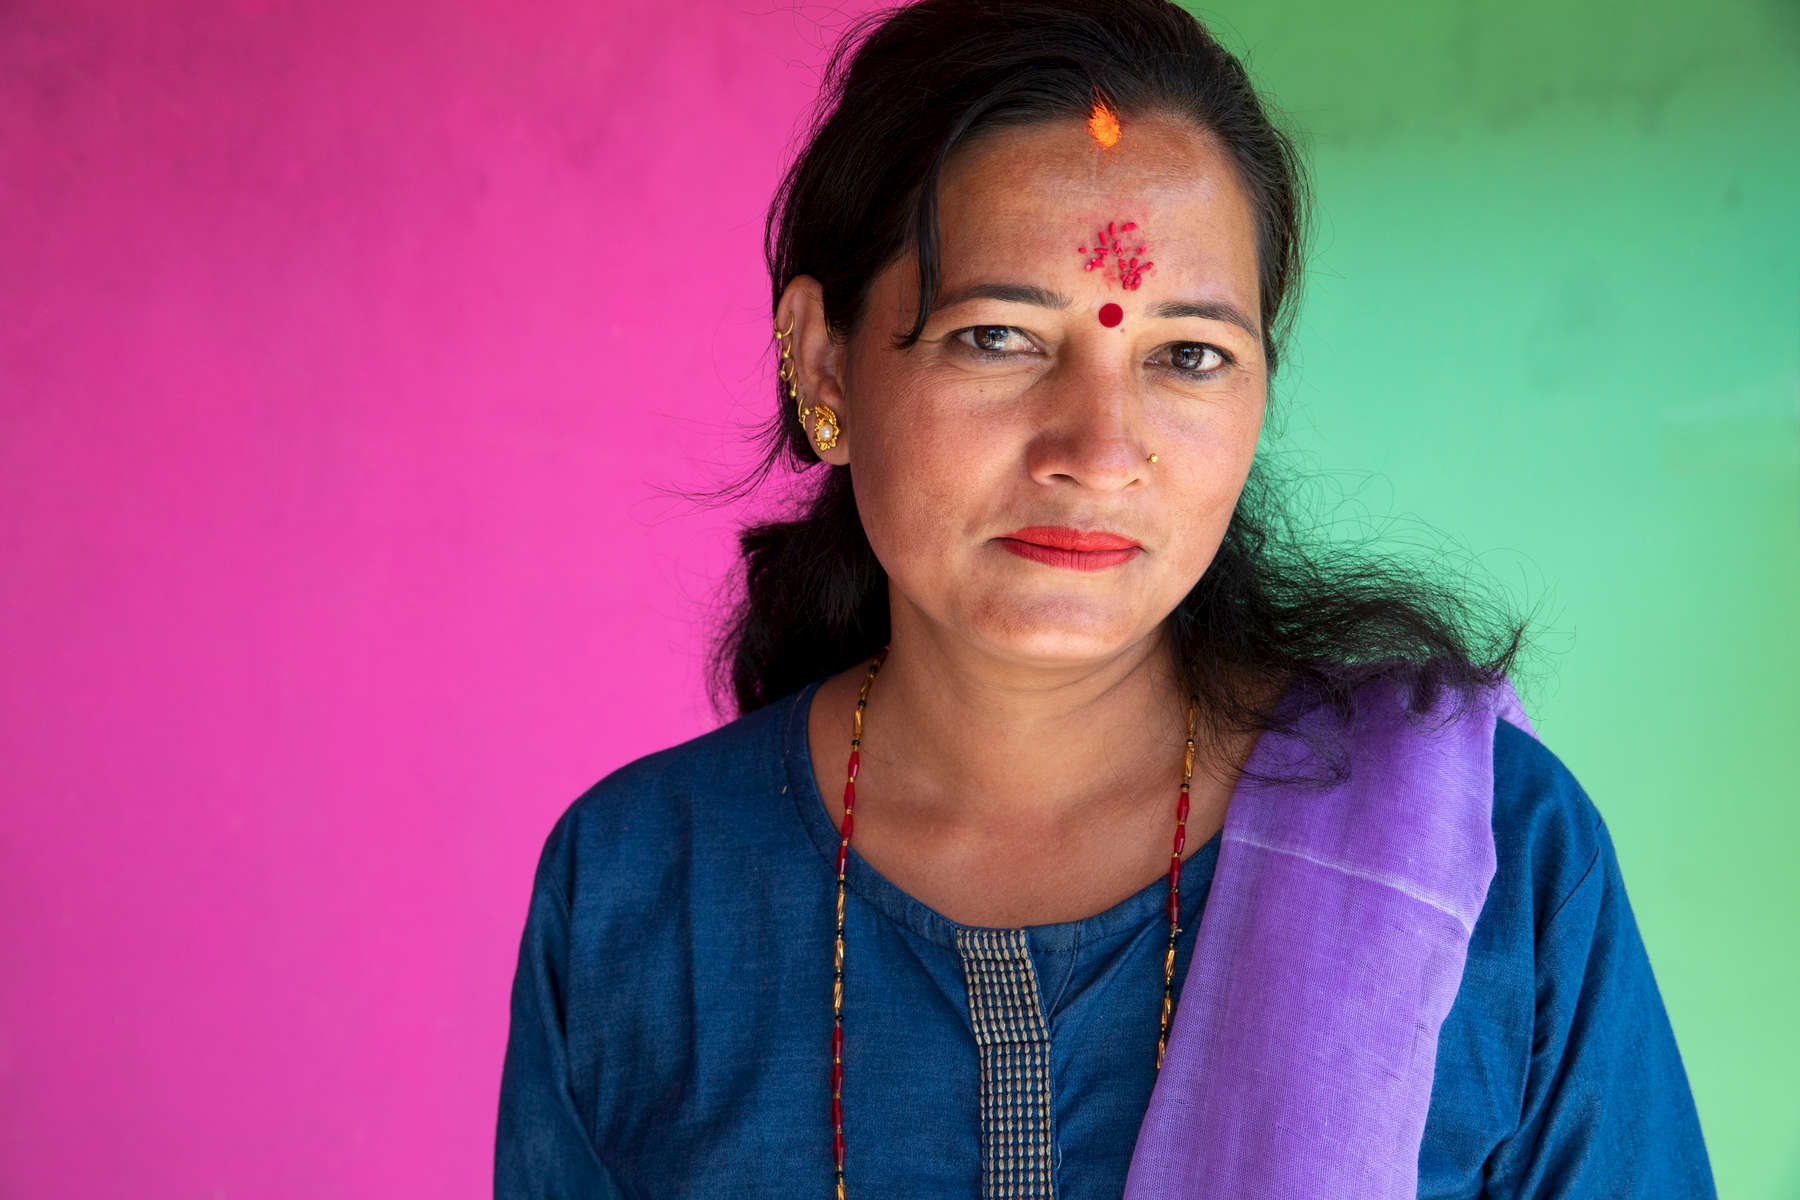 Dil Kumarf Poudel, 35, cares for her two children and runs her household alone, as her husband has migrated to Malaysia to work as a daily wage laborer. Livelihood opportunities are scarce here, especially for girls, who face incredible barriers to education and income generation, including the pressure to marry early, unequal household responsibilities, and a lack of familial support. Dil married at 15 — while in grade 8 — but continued her studies, even though it was difficult. However, after she failed her grade 10 exam and got pregnant, she dropped out completely, instead tending to her children full time and supporting them with them with agricultural work. She regretted not completing her education and felt her life could never improve. (The grade 10 exam is equivalent to a high school diploma and is required for higher education or skilled work.)Mercy Corps' STEM program supports out-of-school girls age 16-30 with life skills education, financial literacy classes and access to loans, so they can build better livelihoods and improve their lives. Dil began attending the program meetings several years ago, a move that transformed her view of herself and helped her build the confidence to retake her grade 10 exam and complete her education. With her grade 10 certification, she has been able to take a position on the board of the local school and now works to improve its facilities and ensure students get the education they deserve.